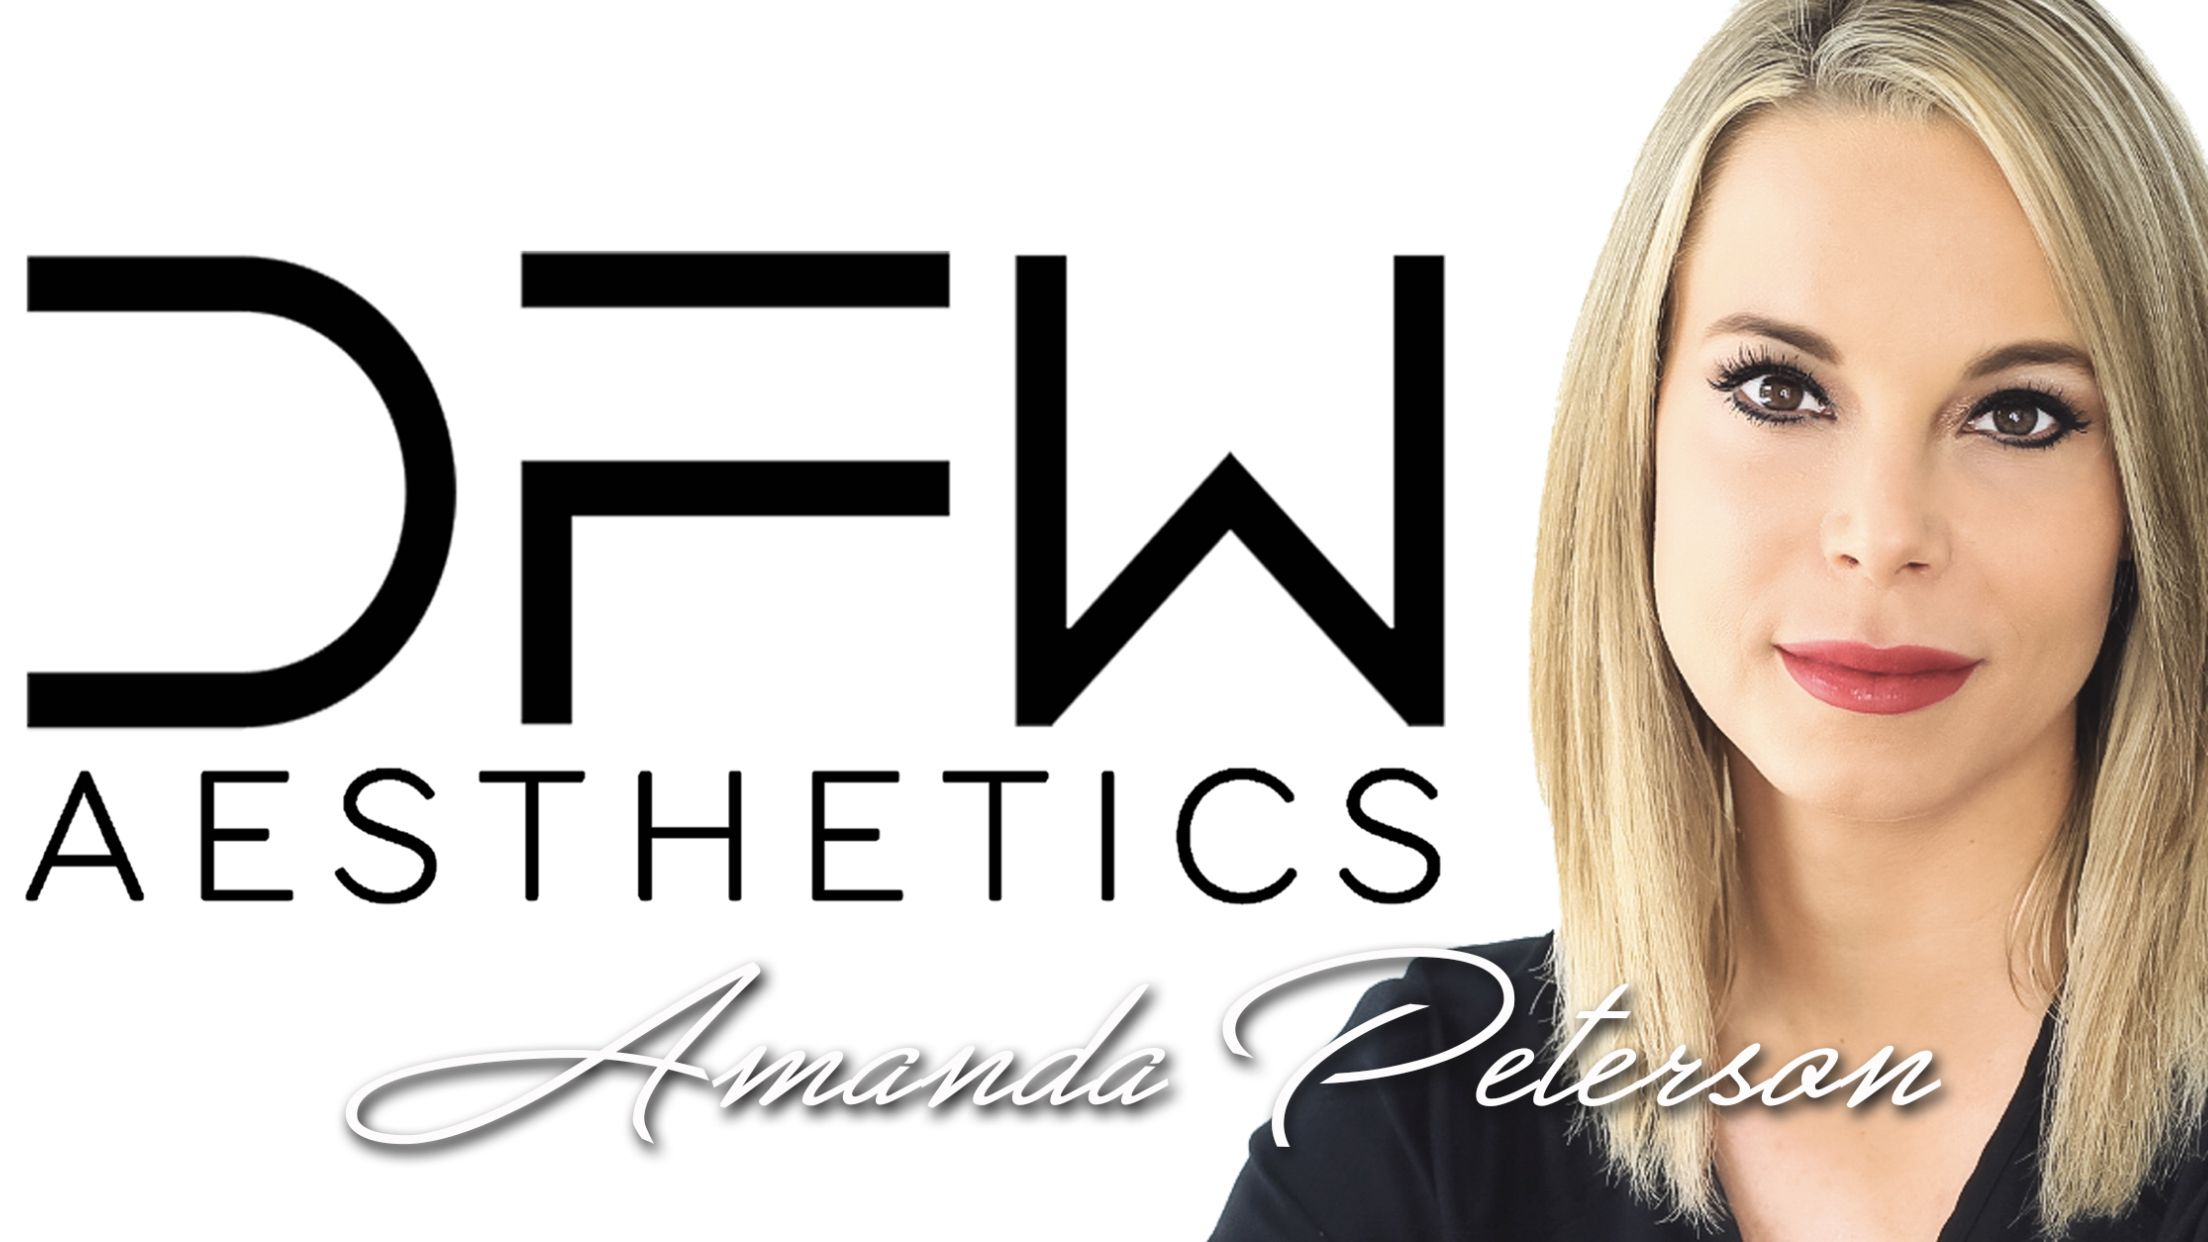 Hydrafacial Video By Amanda Peterson With DFW Aesthetics